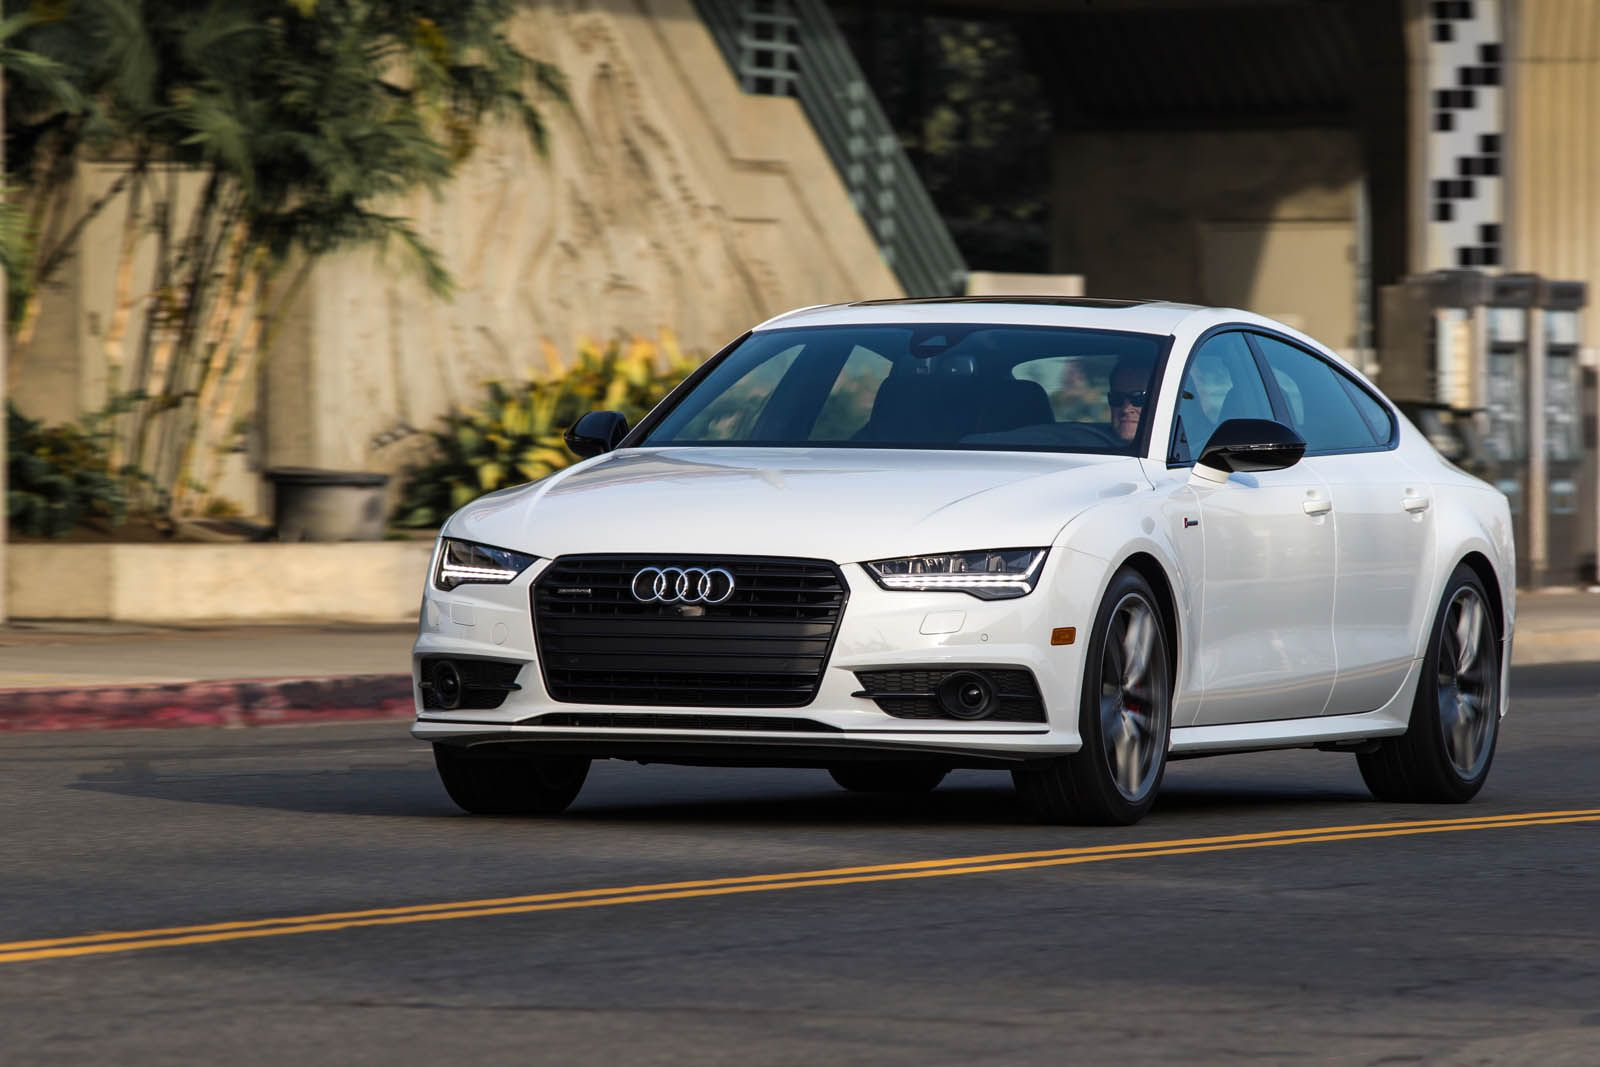 Almost All Audi A7 Cars From The Last Three Years Get